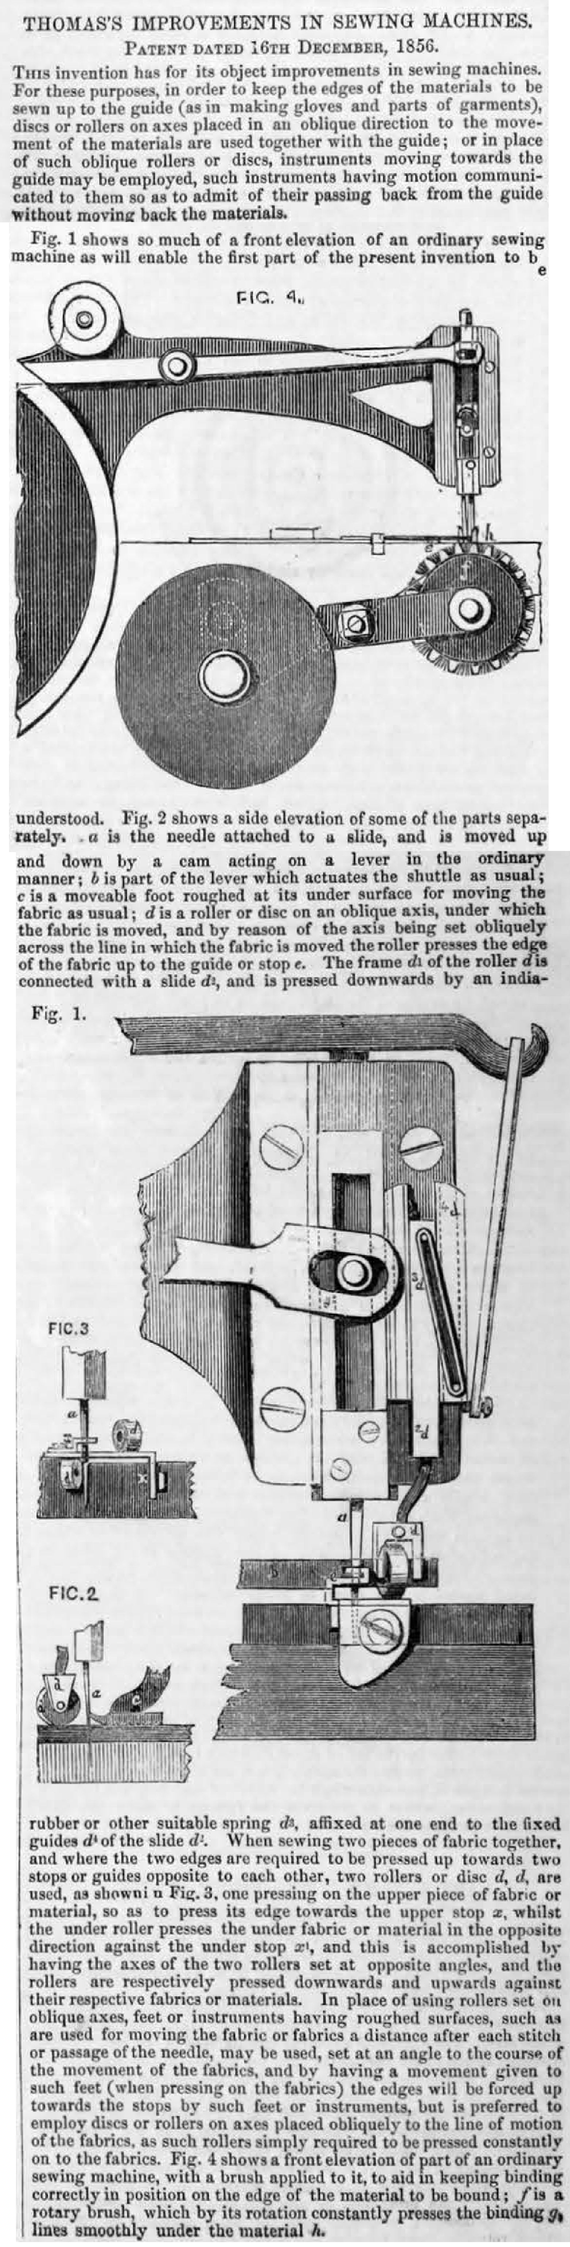 THE  ENGINEER  (August 7, 1857)